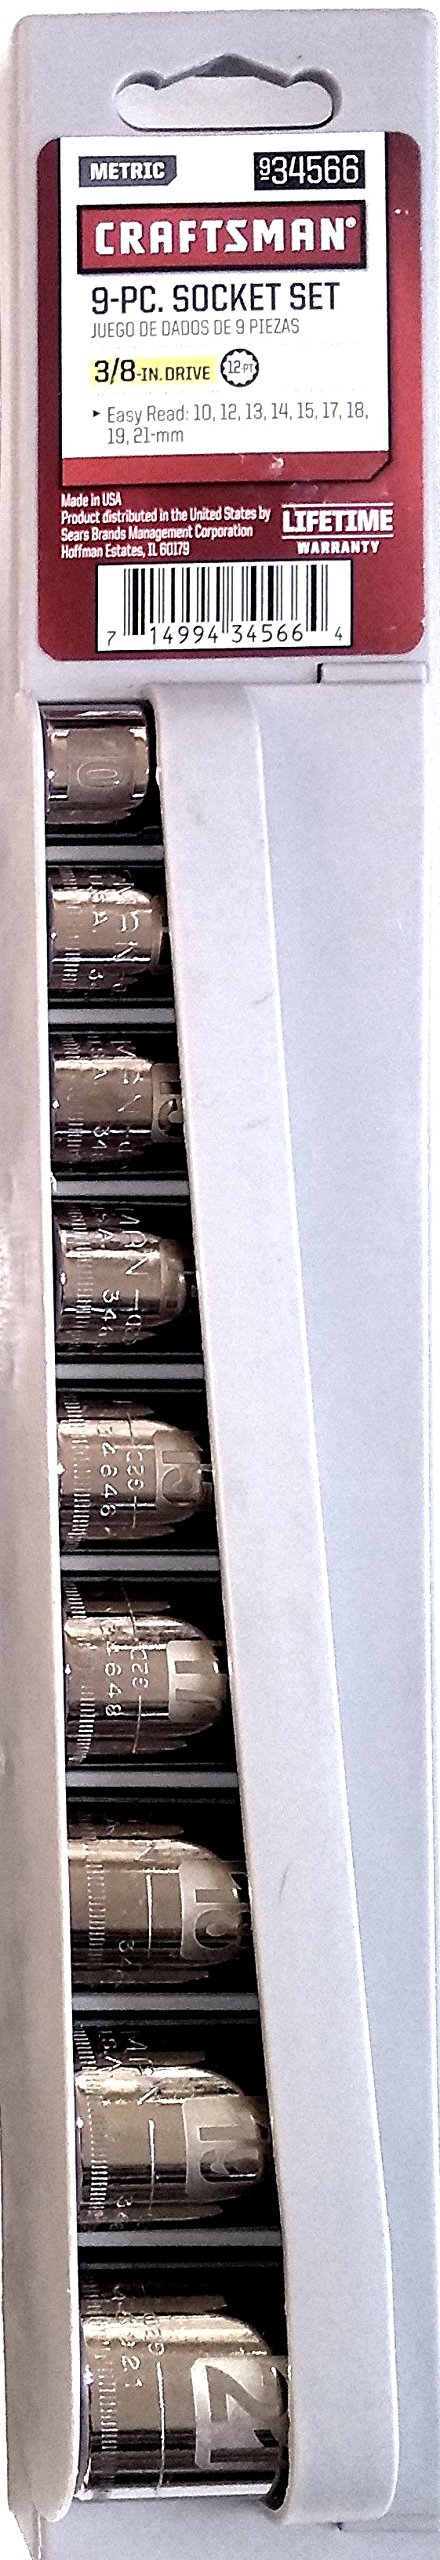 Craftsman 9pc Metric MM 3/8'' Drive, 12 point socket set Easy to Read Laser Etched, Made in USA 9-34566